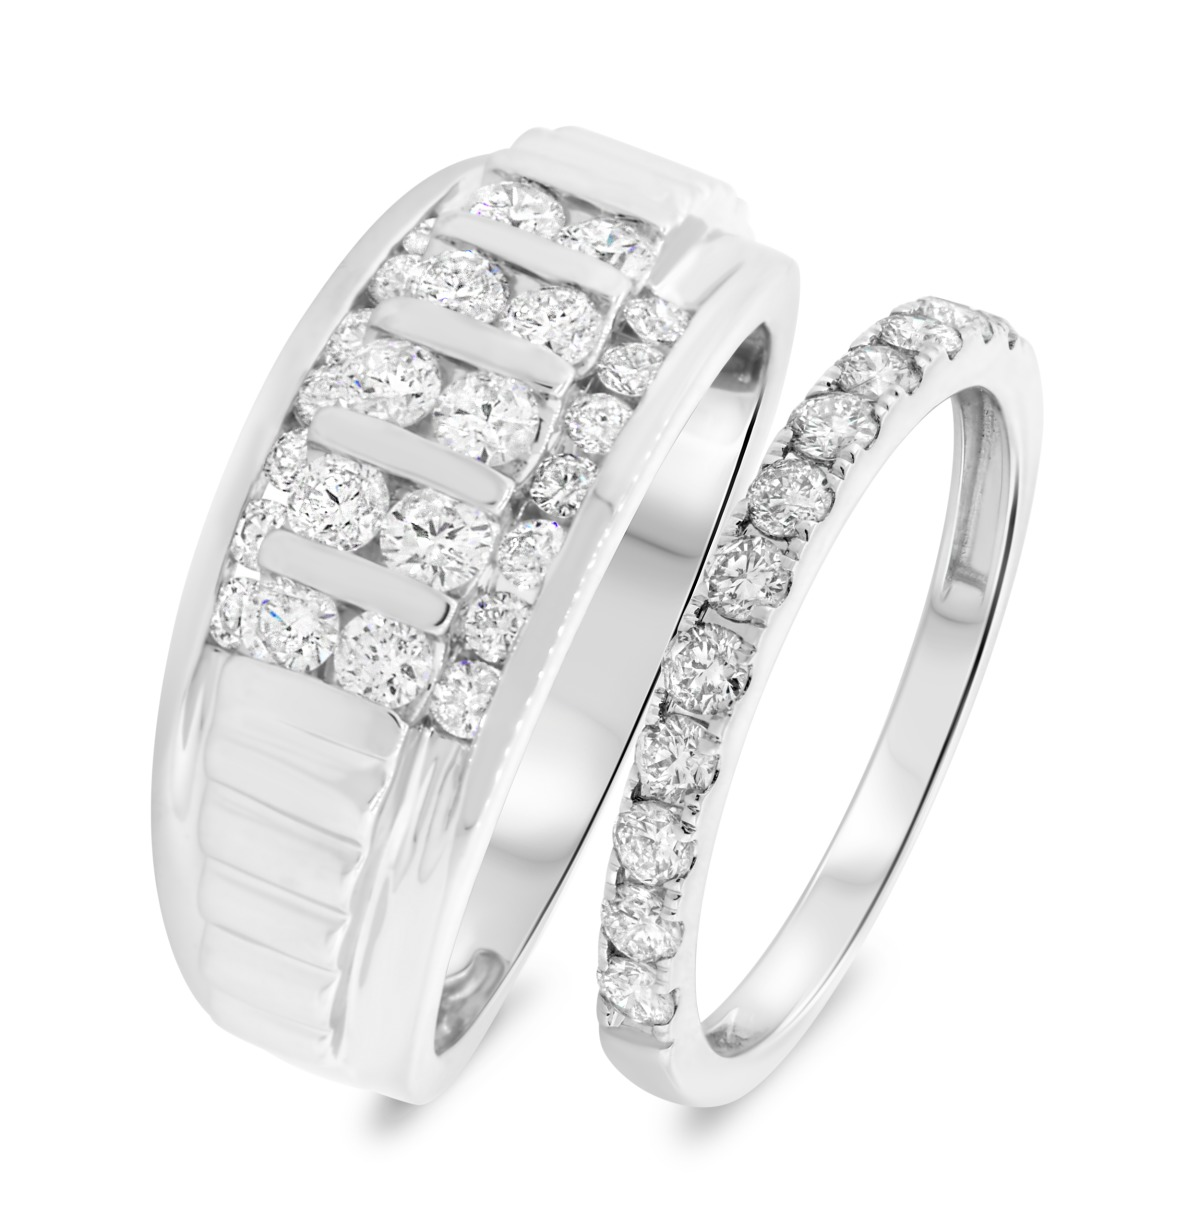 1 1/2 CT. T.W. Diamond Matching Wedding Band Set 14K White Gold